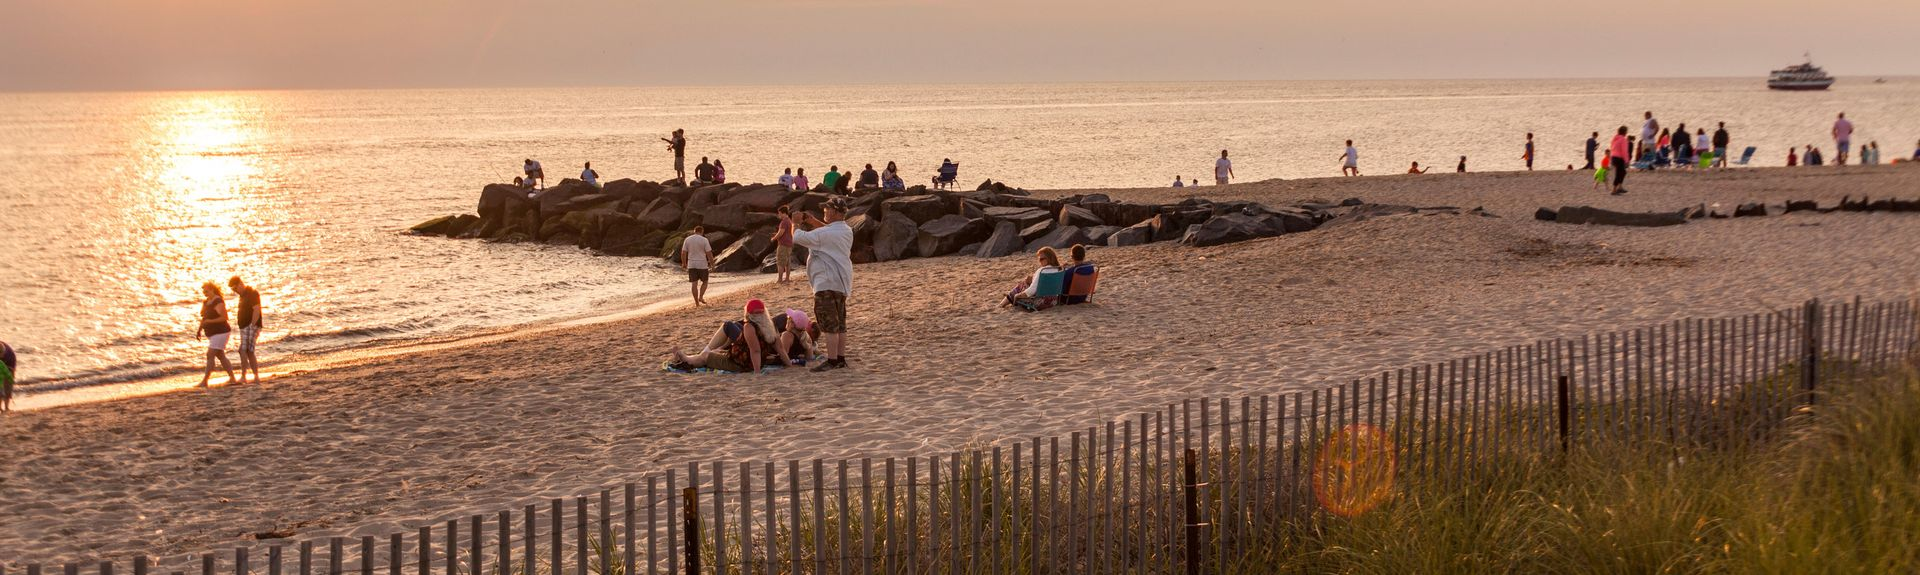 Sunset Beach, Cape May, New Jersey, United States of America